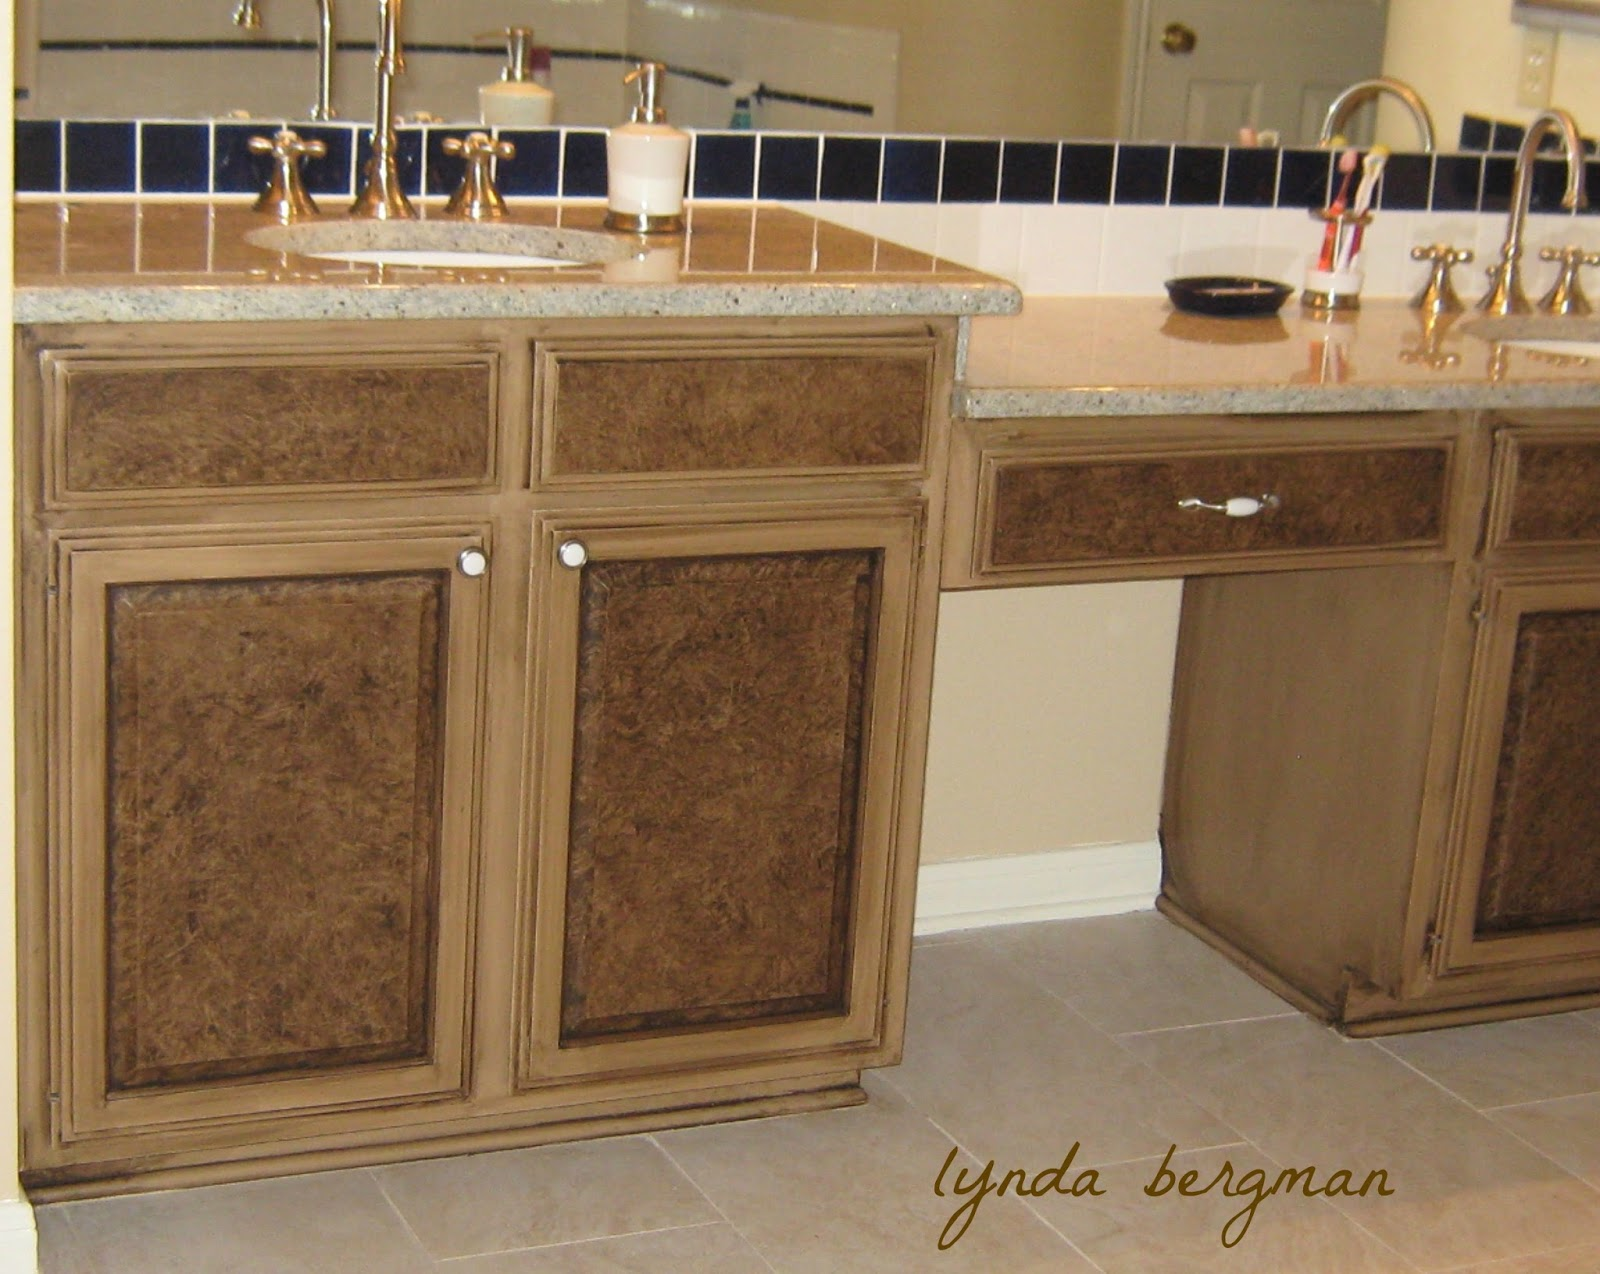 Lynda bergman decorative artisan december 2013 for White pickled kitchen cabinets